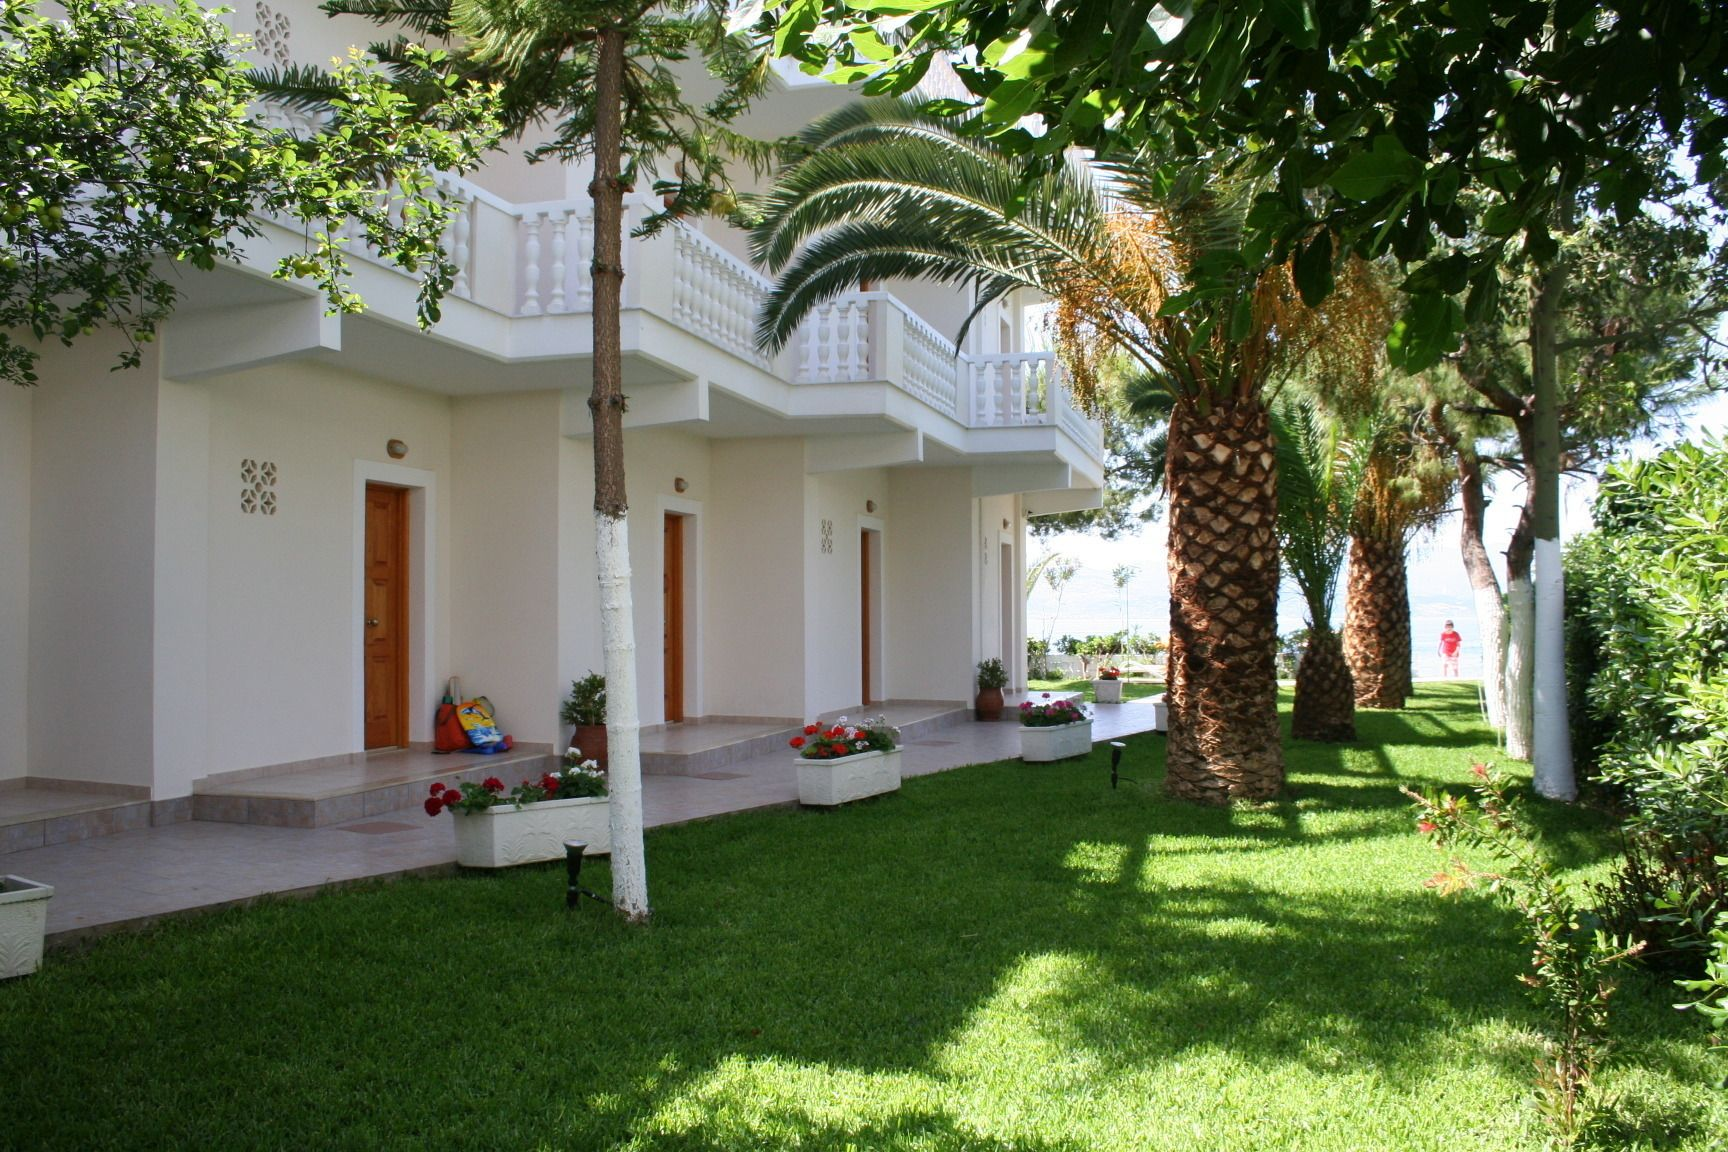 Posidonia Pension